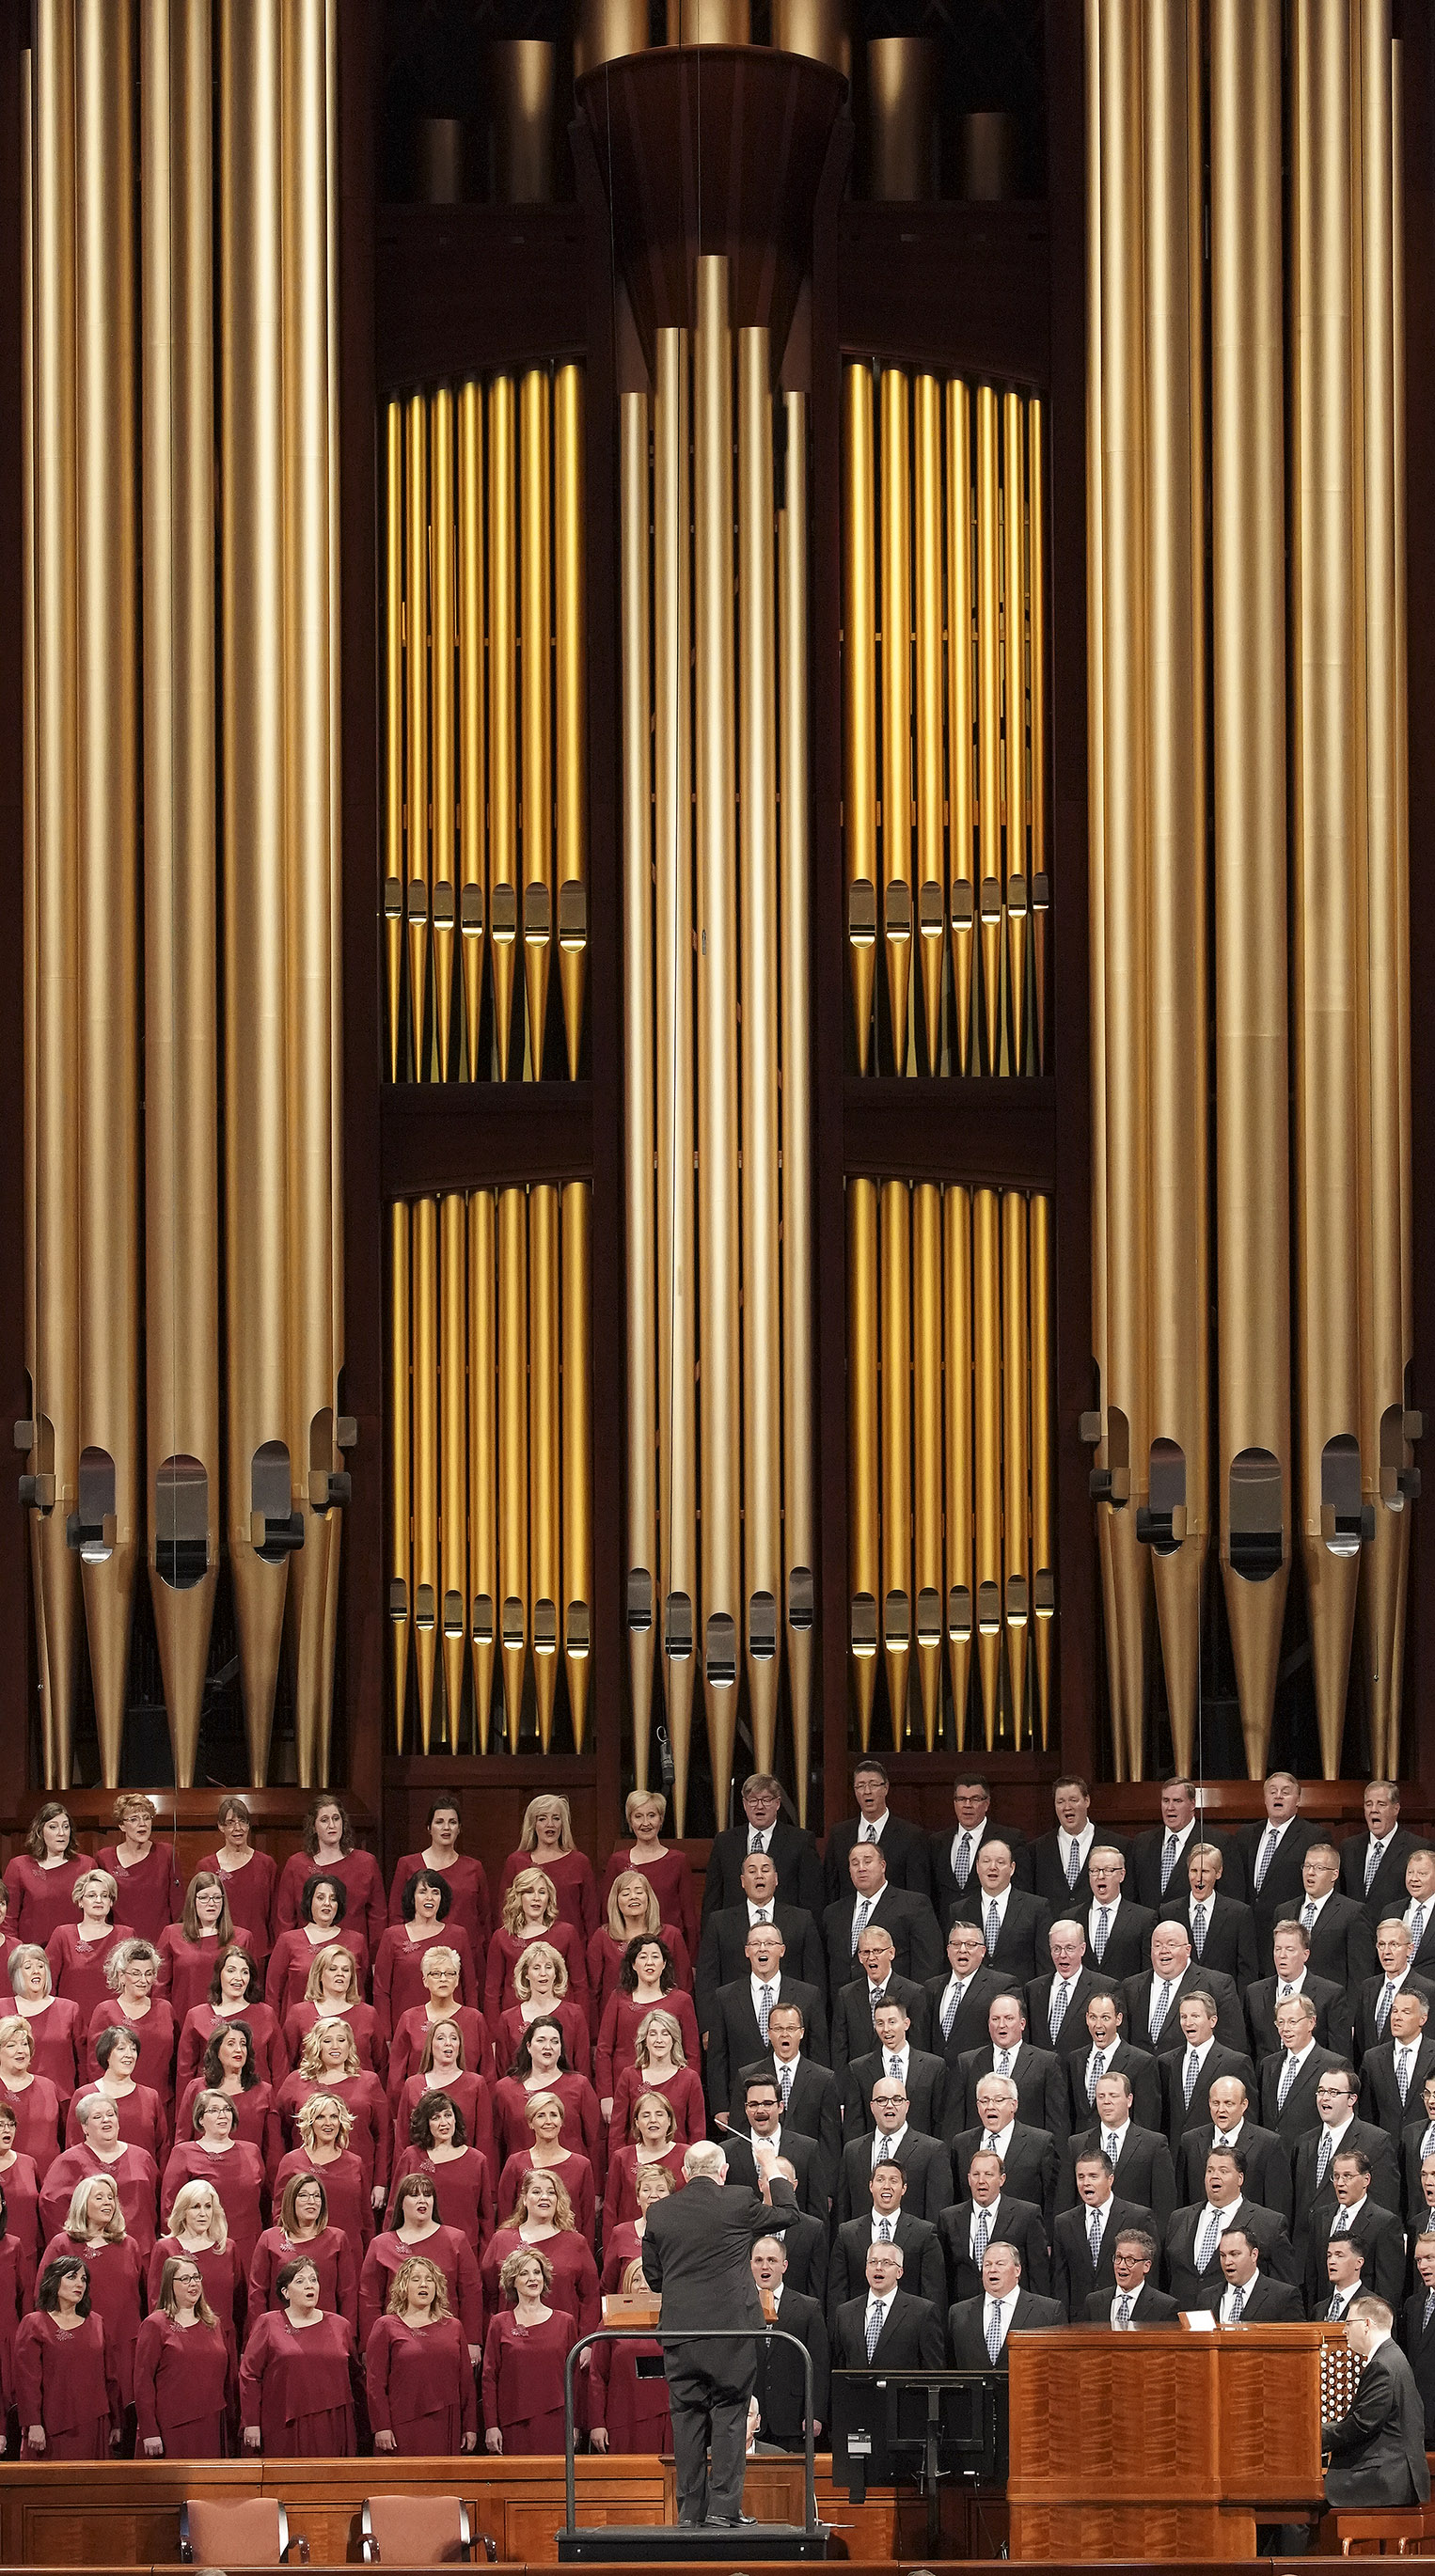 The Tabernacle Choir at Temple Square sings during the Sunday morning session of the 189th Semiannual General Conference of The Church of Jesus Christ of Latter-day Saints in Salt Lake City on Sunday, Oct. 6, 2019.